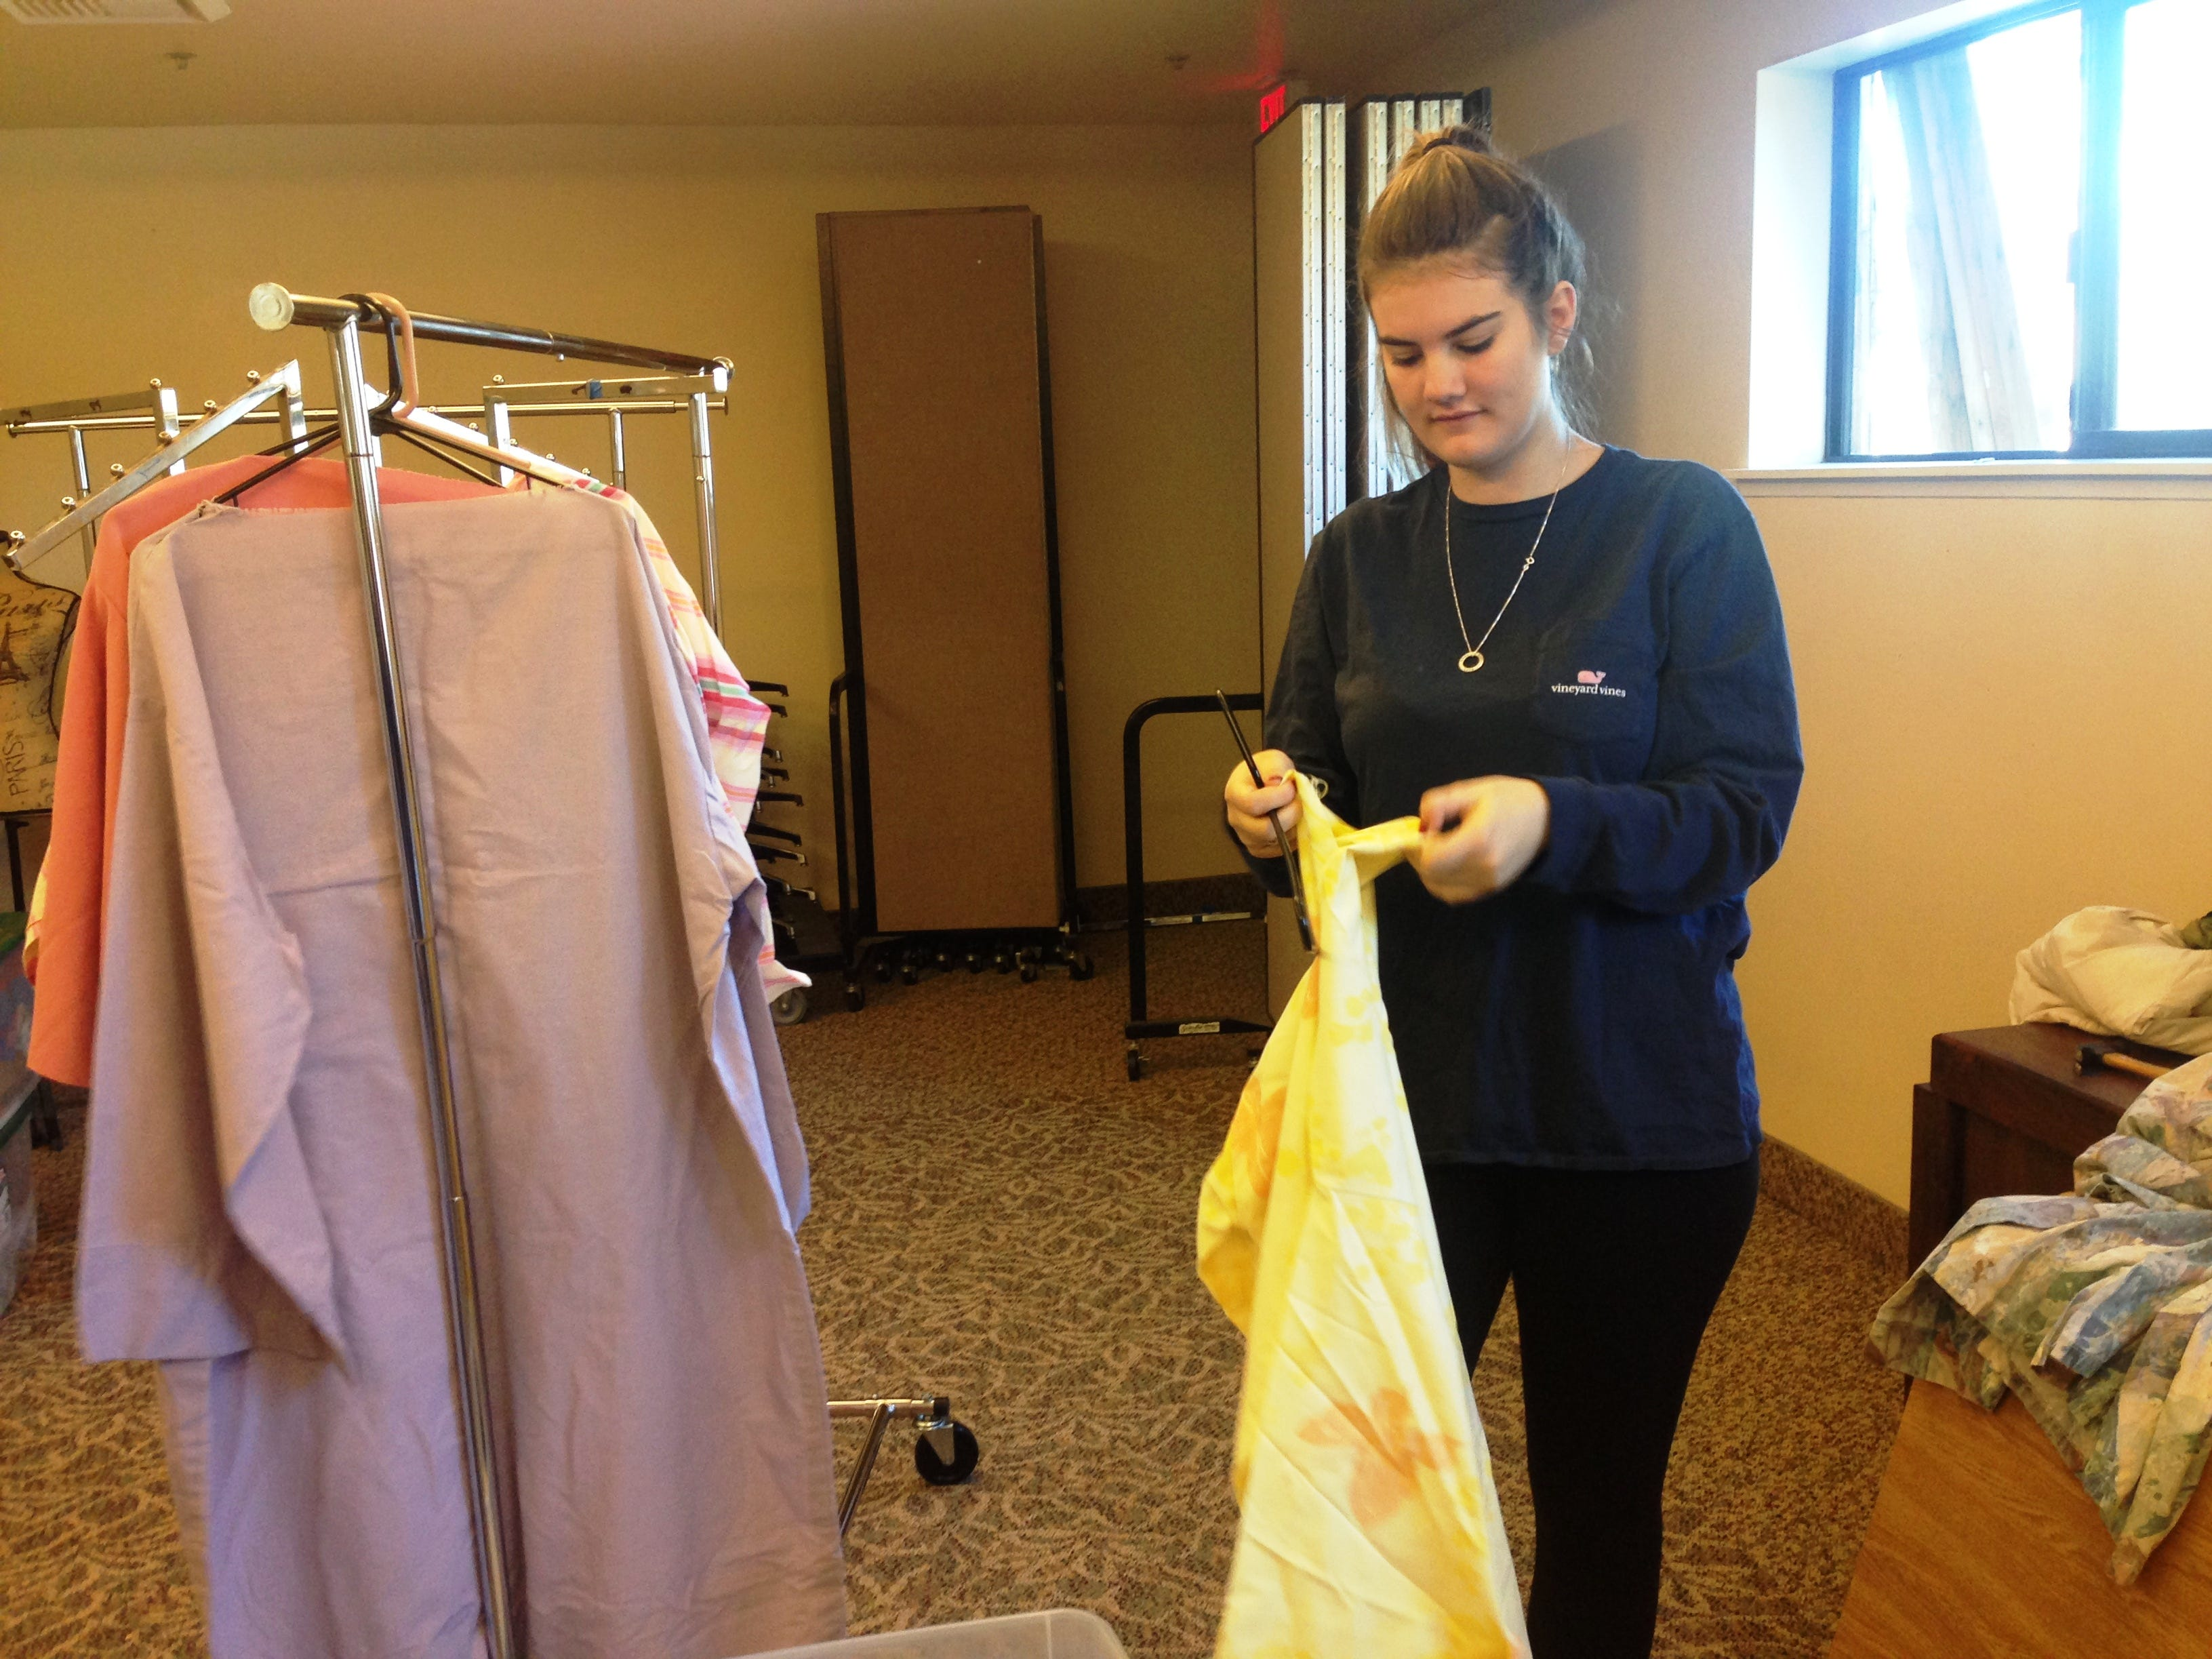 Chloe Nash sorts costumes for the Bethlehem Experience, a drive-through Nativity scene at Westminster Presbyterian Church in Westlake Village. This free event will take place from 5-9 p.m. Friday and Saturday.